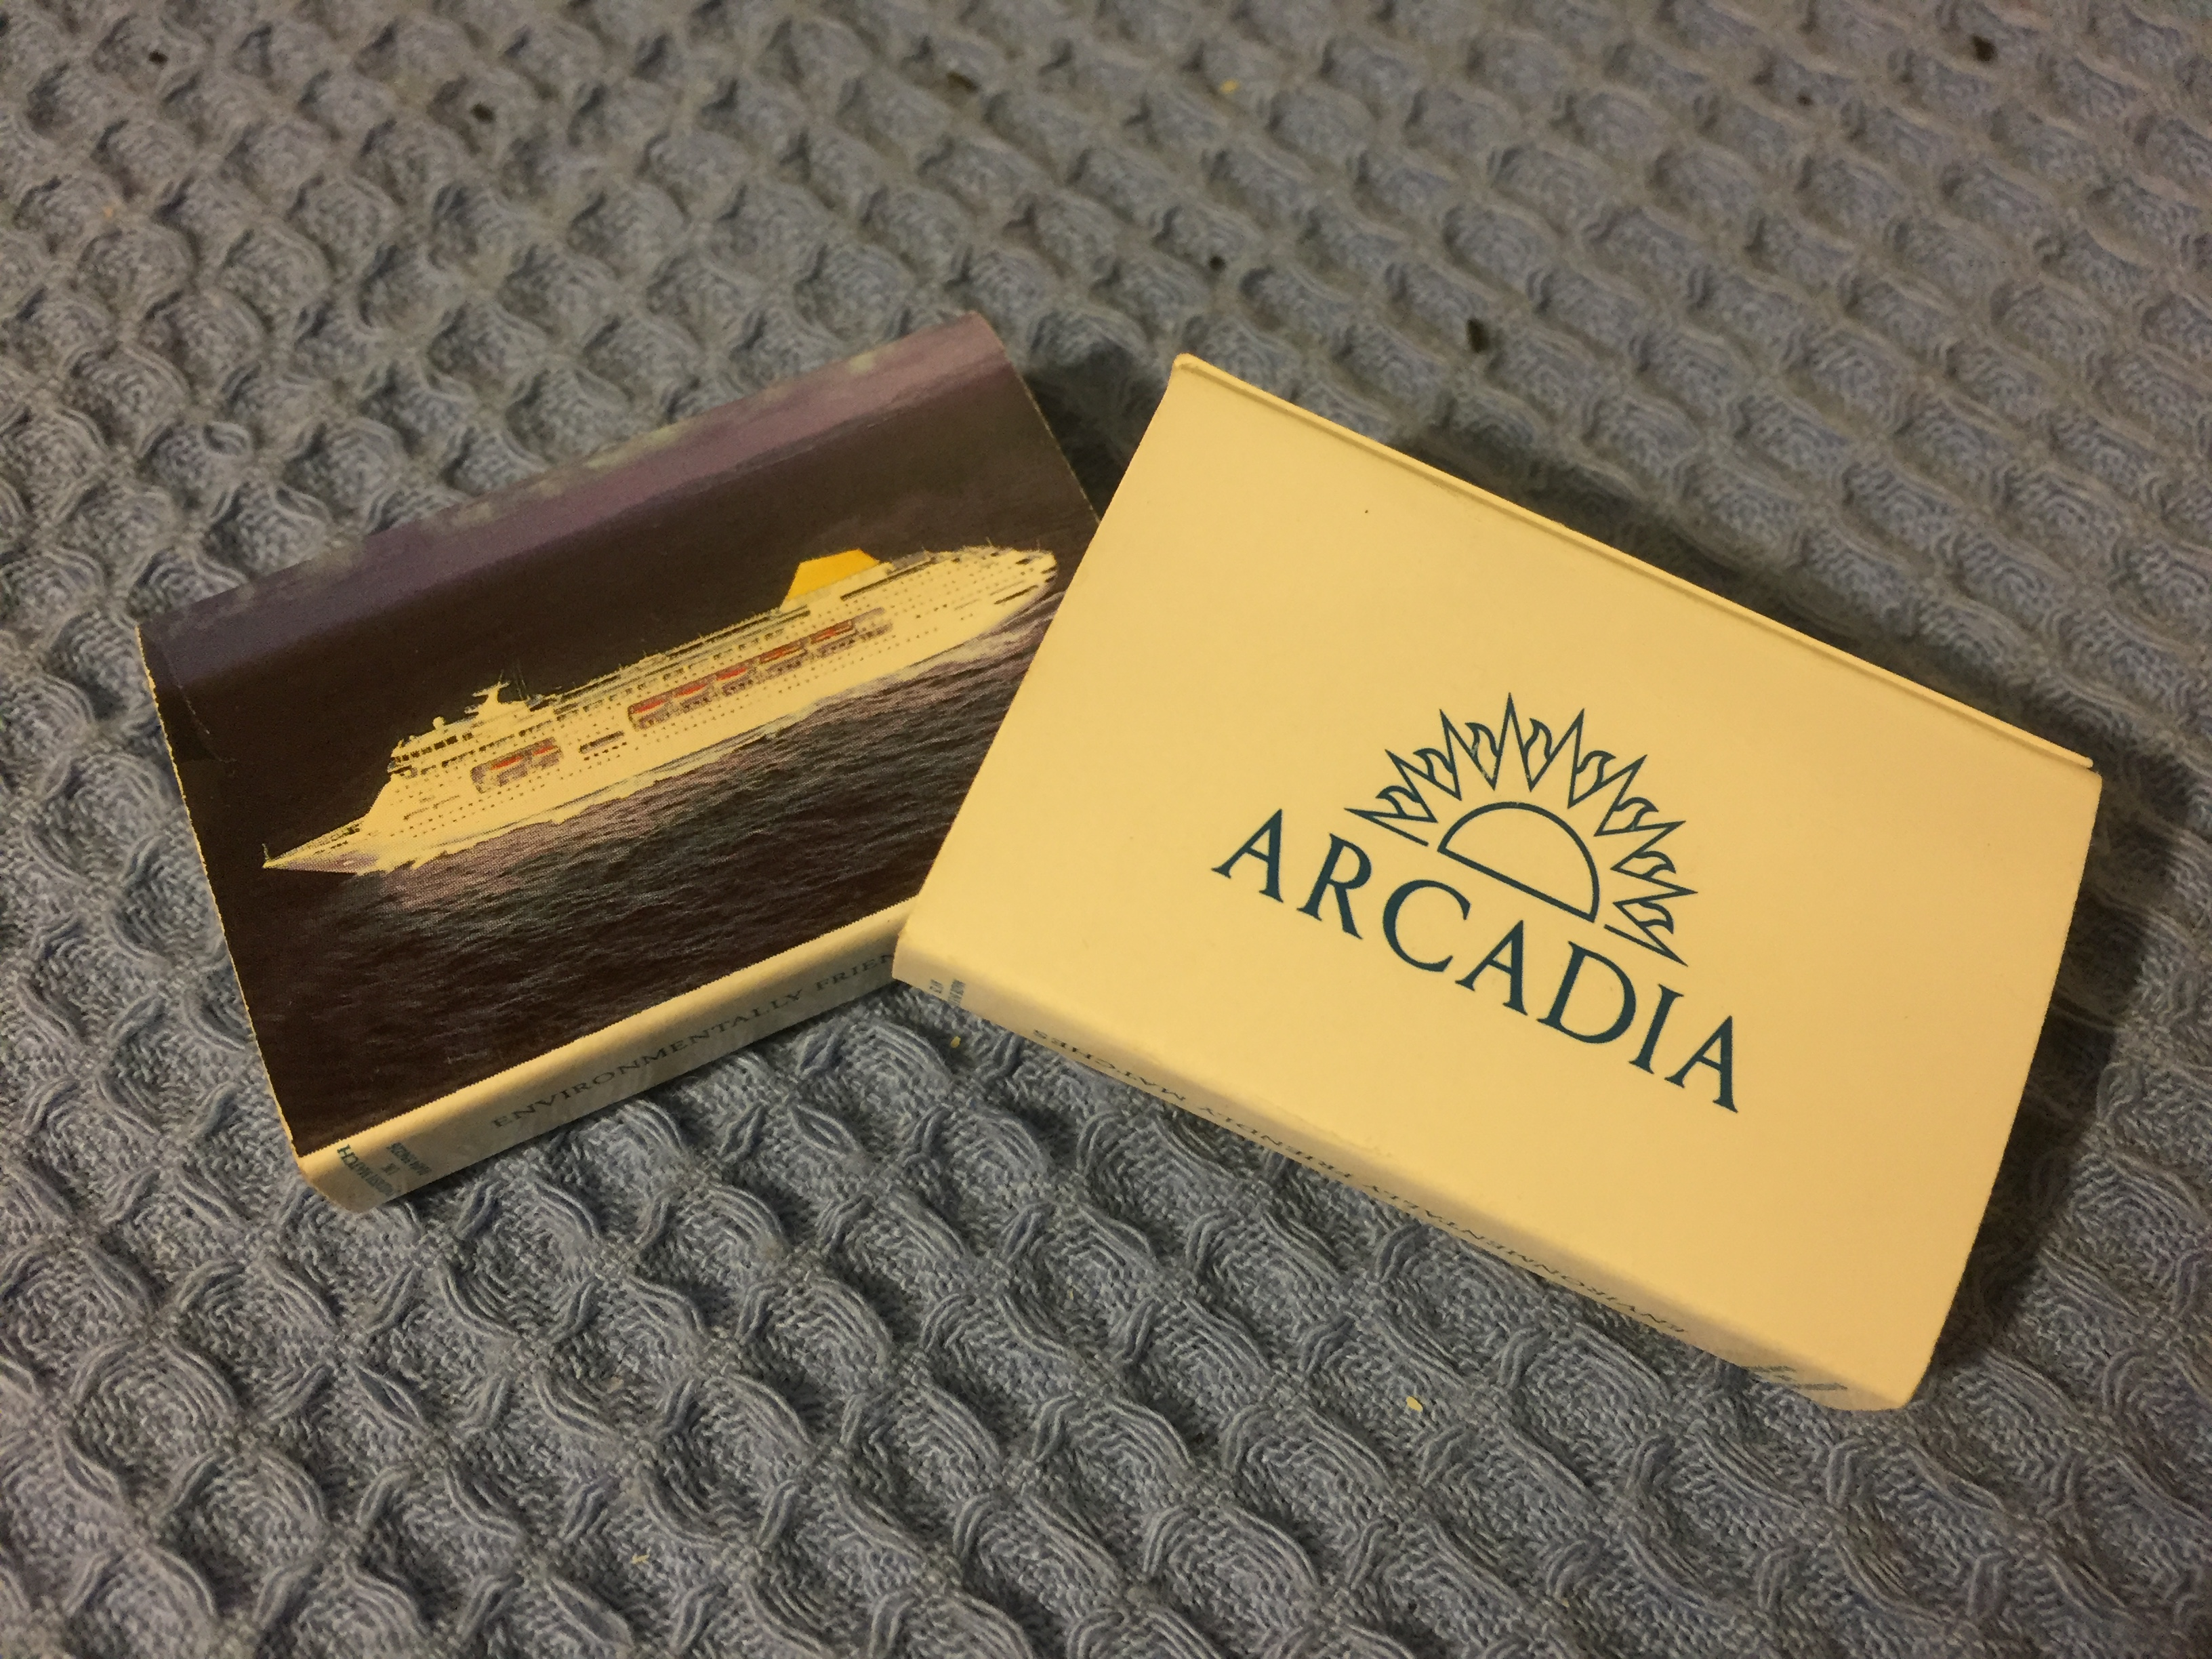 TWO BOXES OF UNUSED MATCHES FROM THE P&O LINE VESSEL ARCADIA